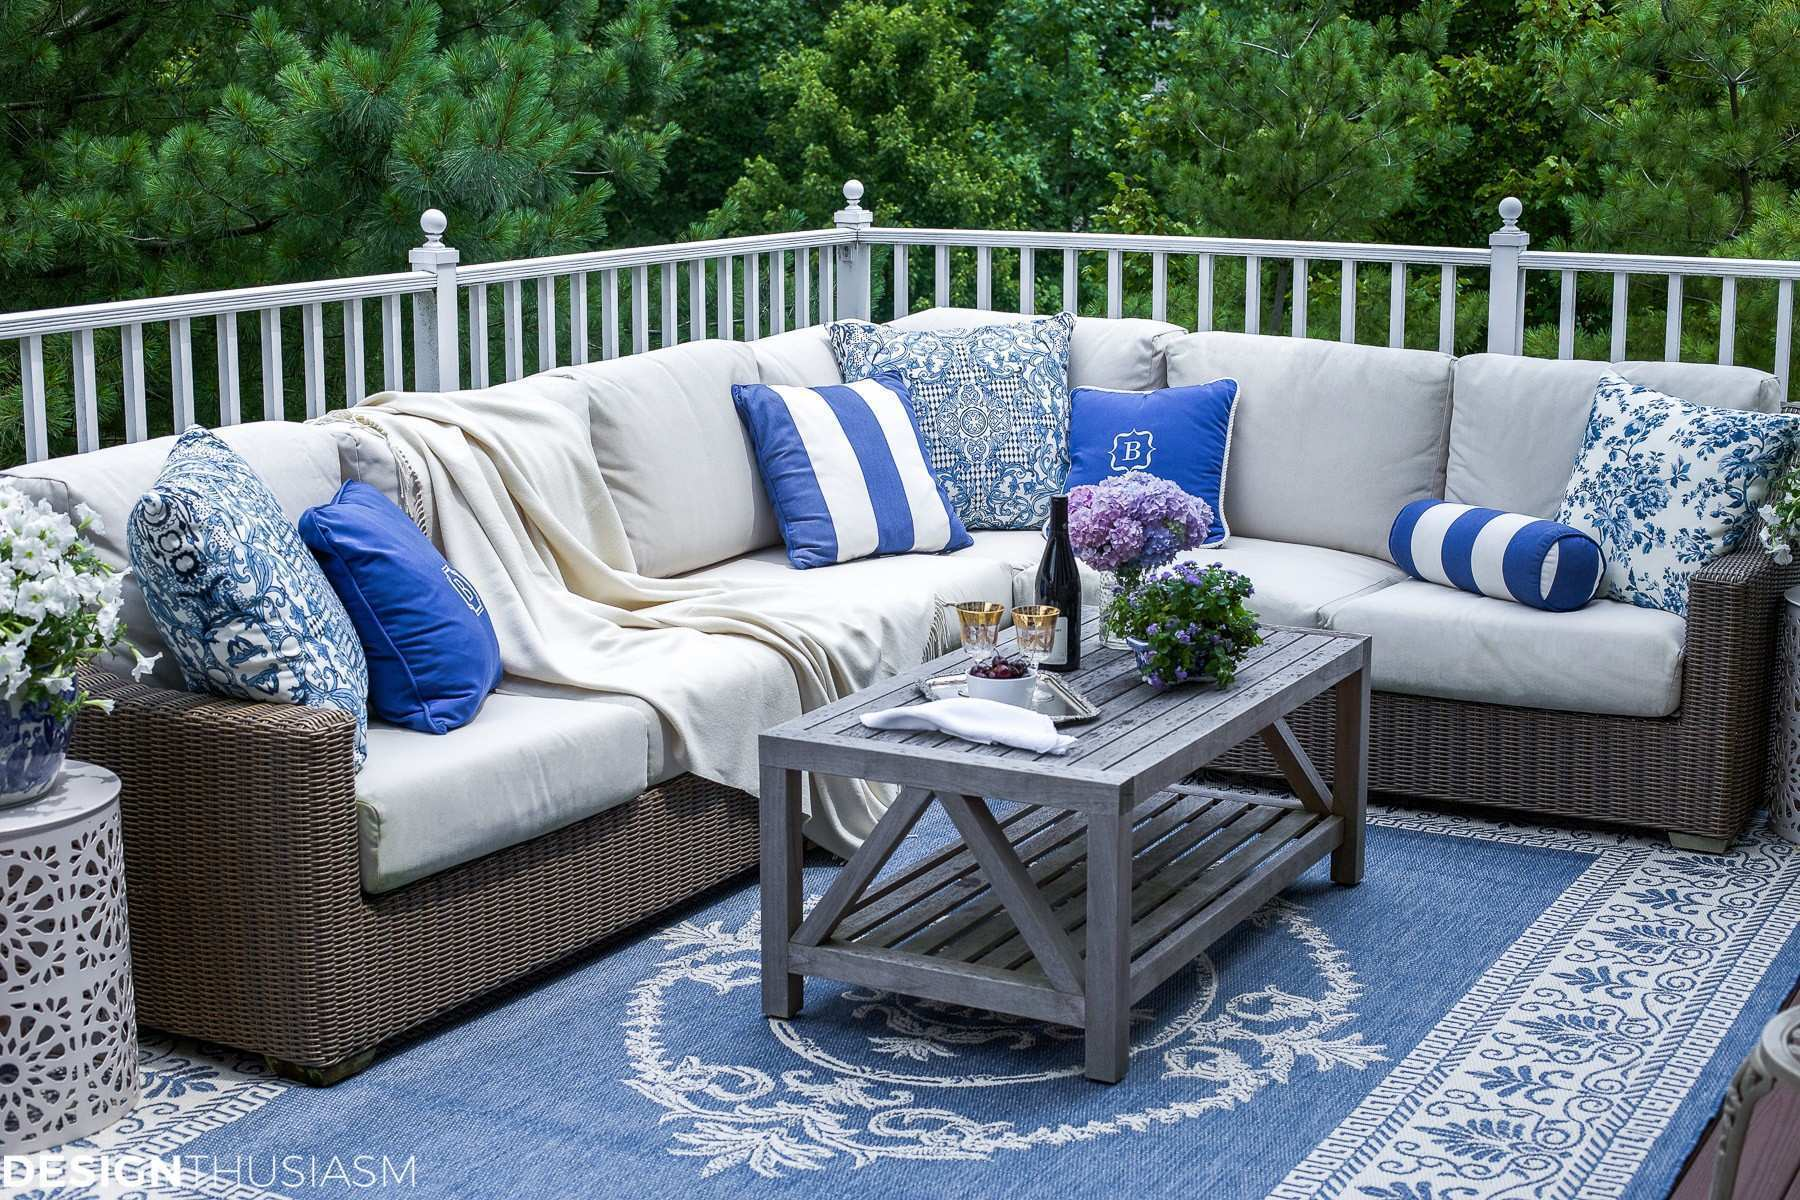 Patio Decor Best Of Cheap Patio Decor Beautiful Patio Decor Fresh Learning Patio Lovely